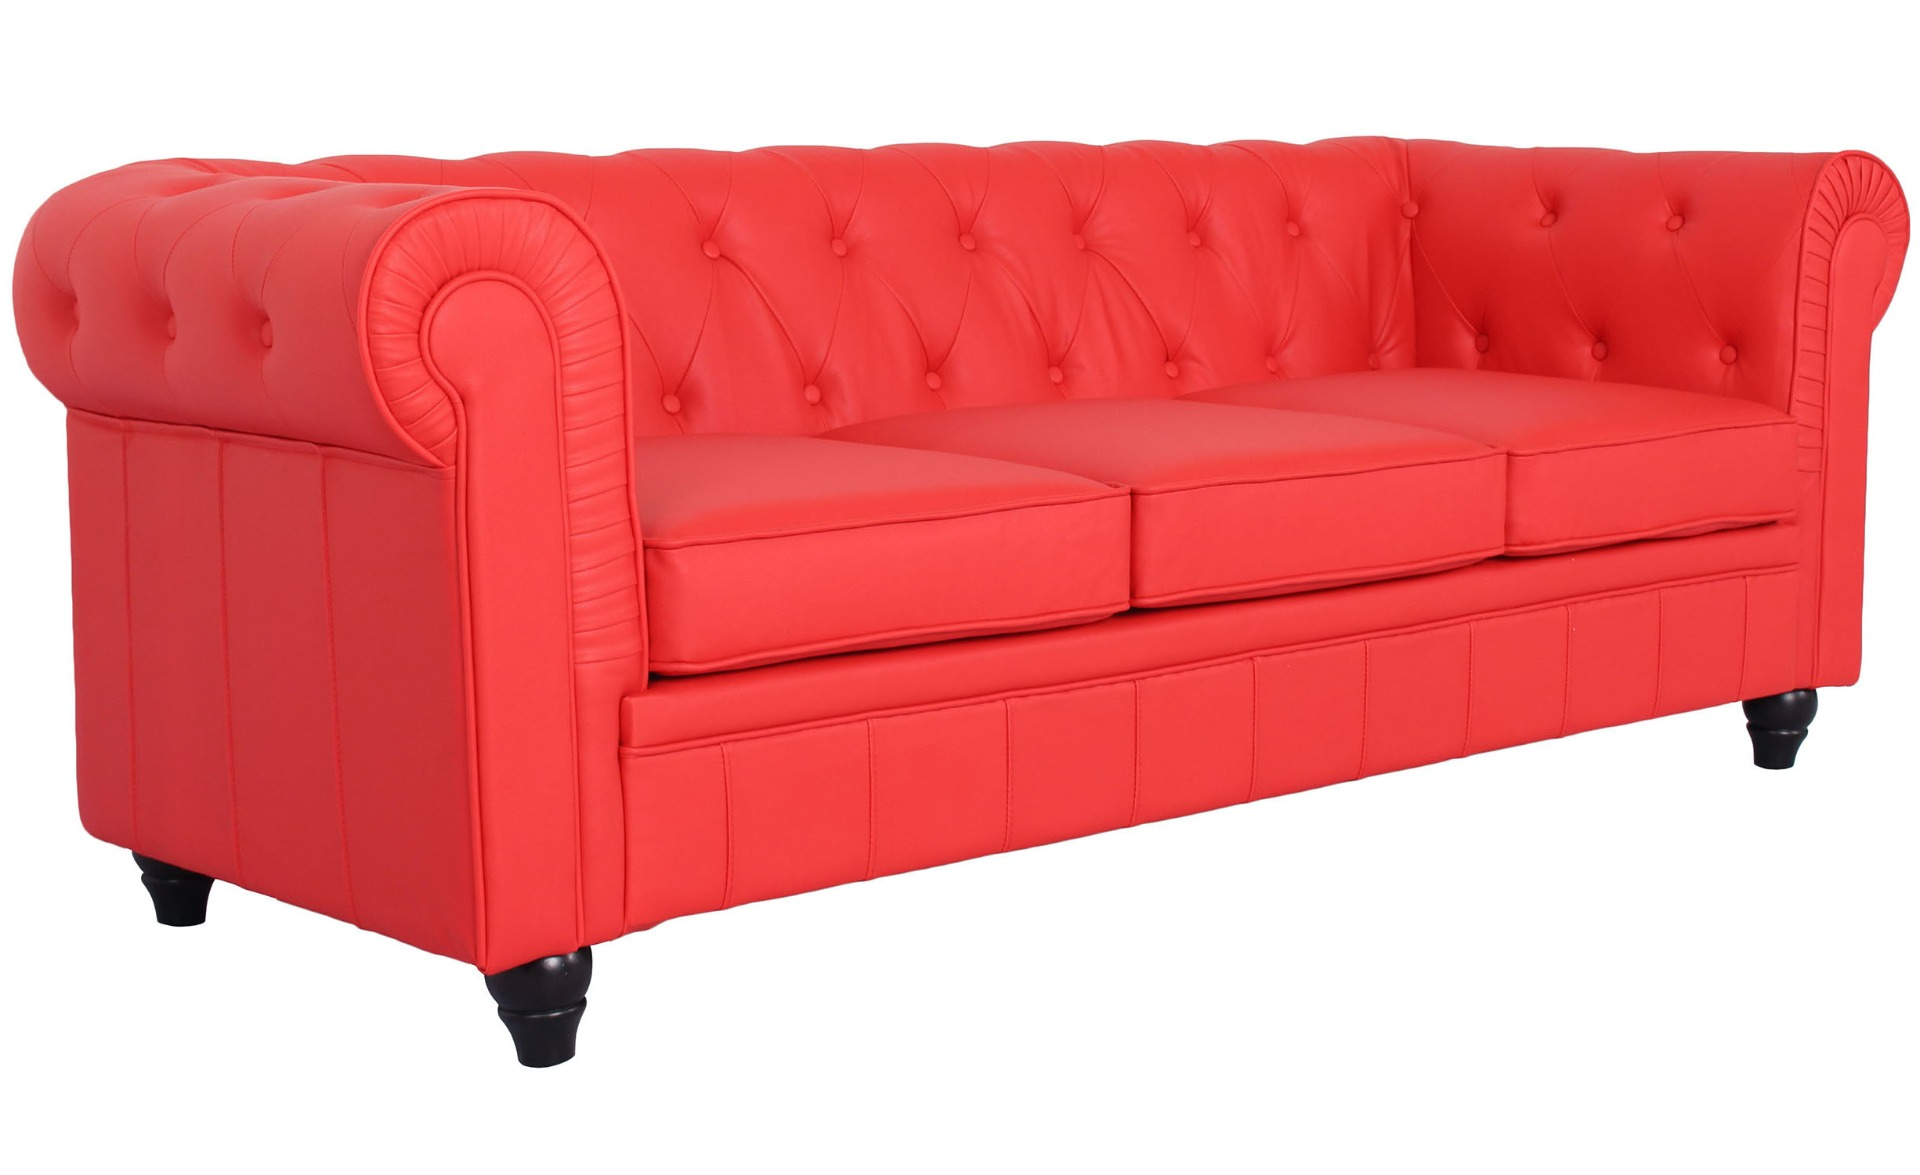 Grote Chesterfield Rood 3-zits bank